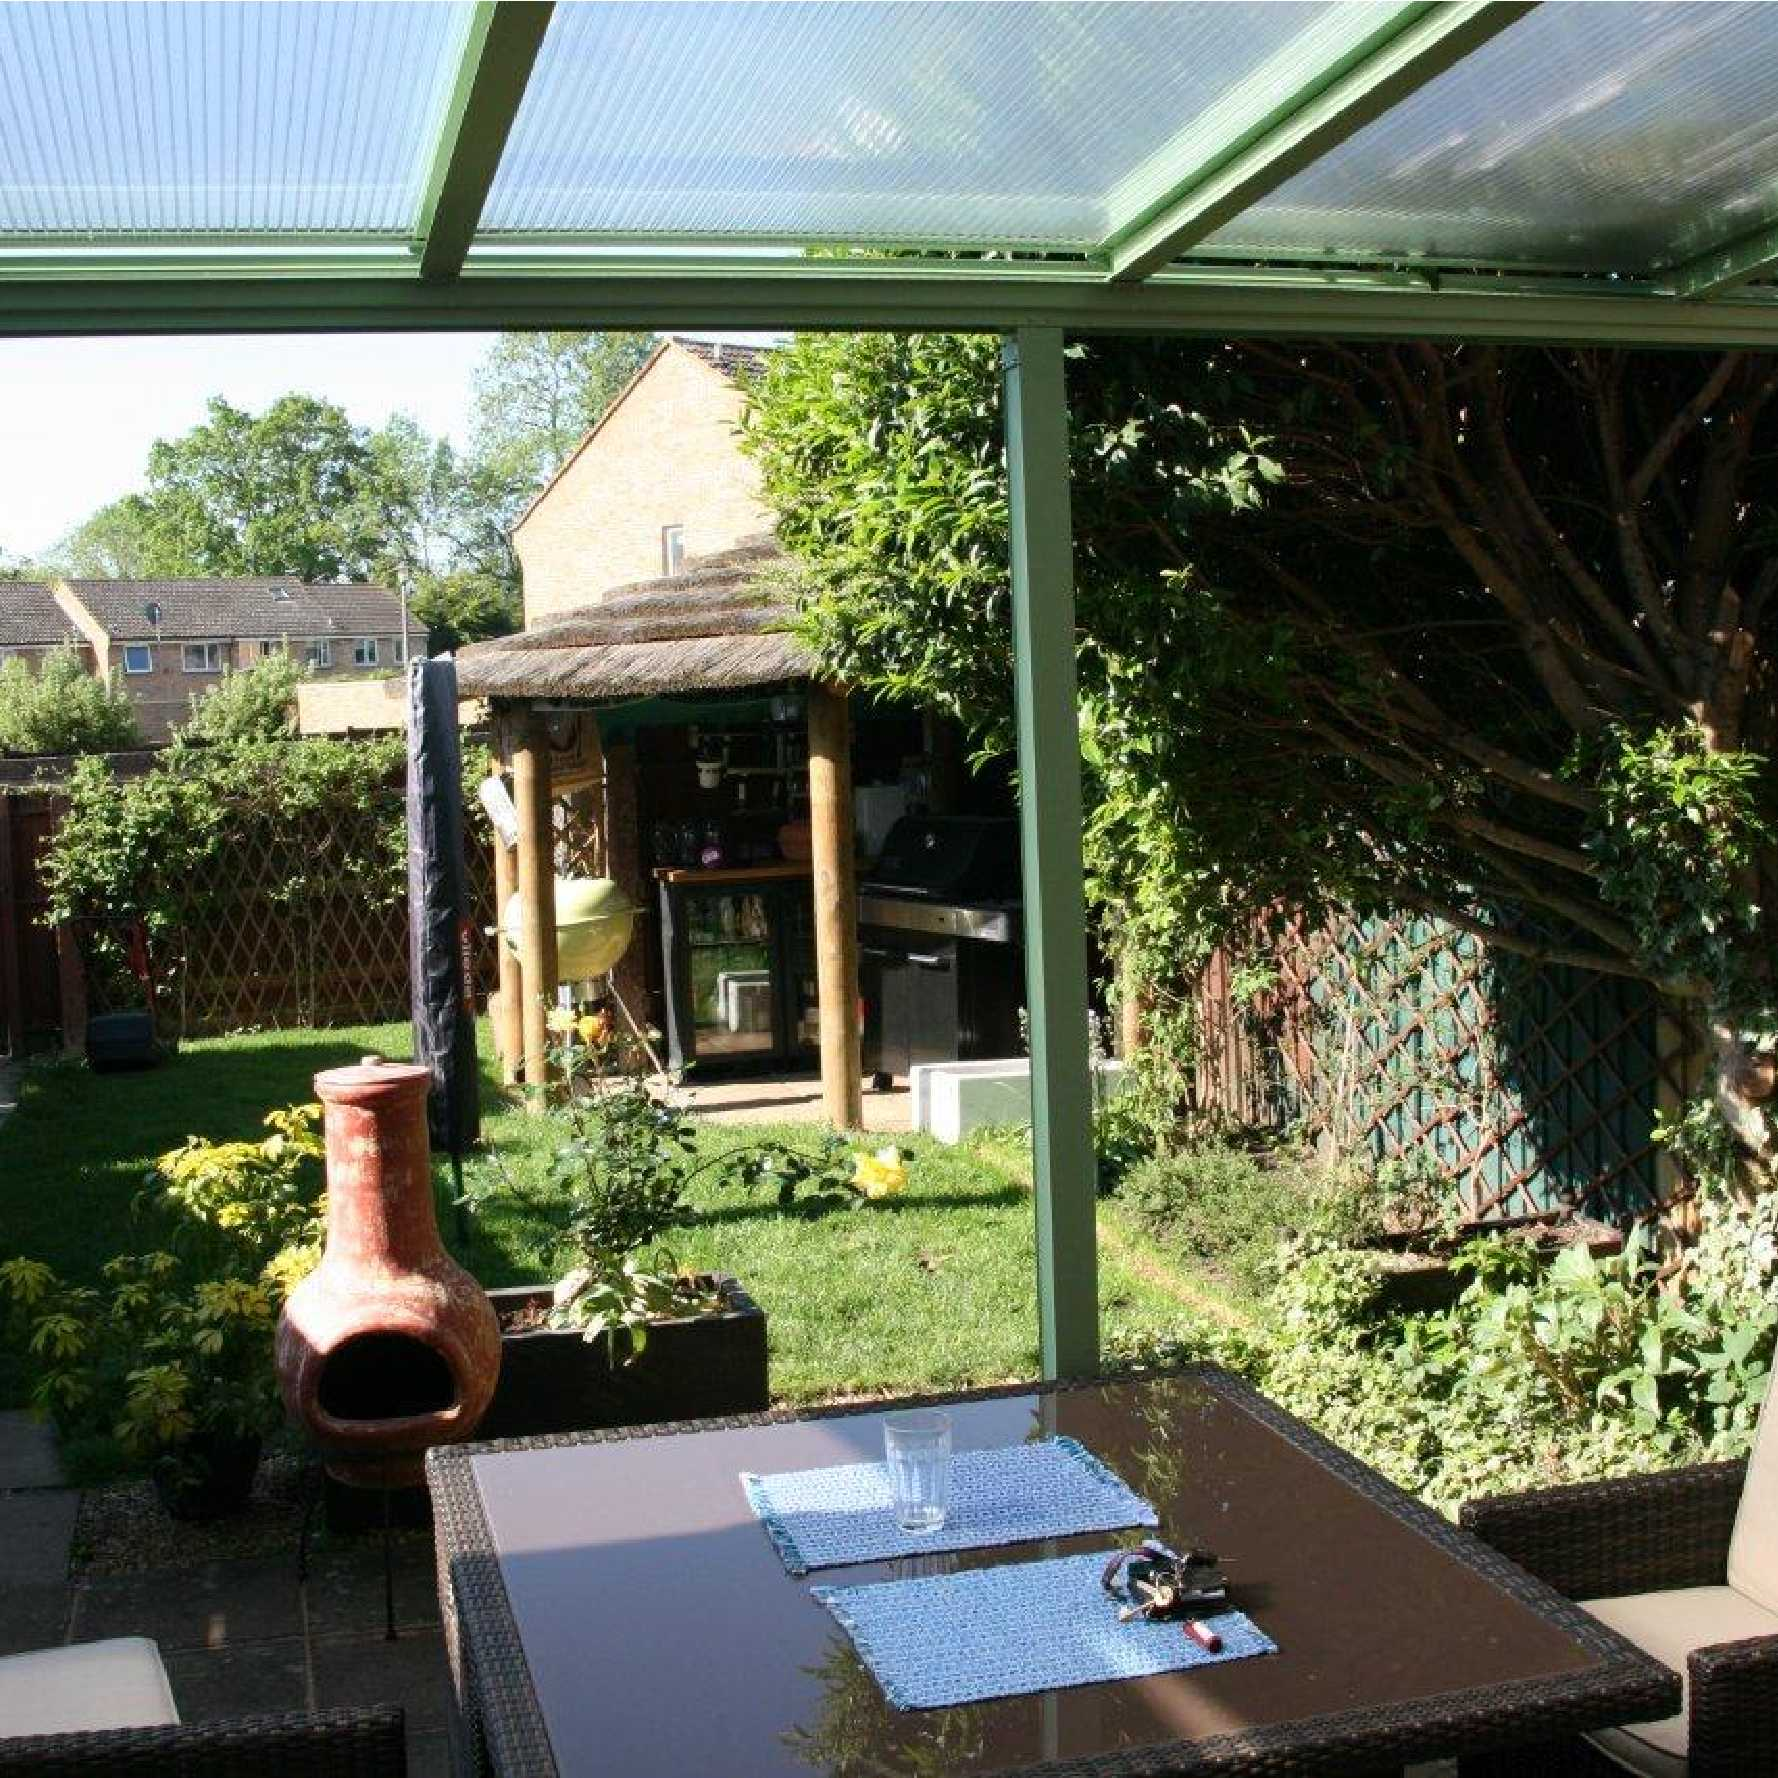 Affordable Omega Smart Lean-To Canopy with 16mm Polycarbonate Glazing - 11.2m (W) x 4.5m (P), (5) Supporting Posts